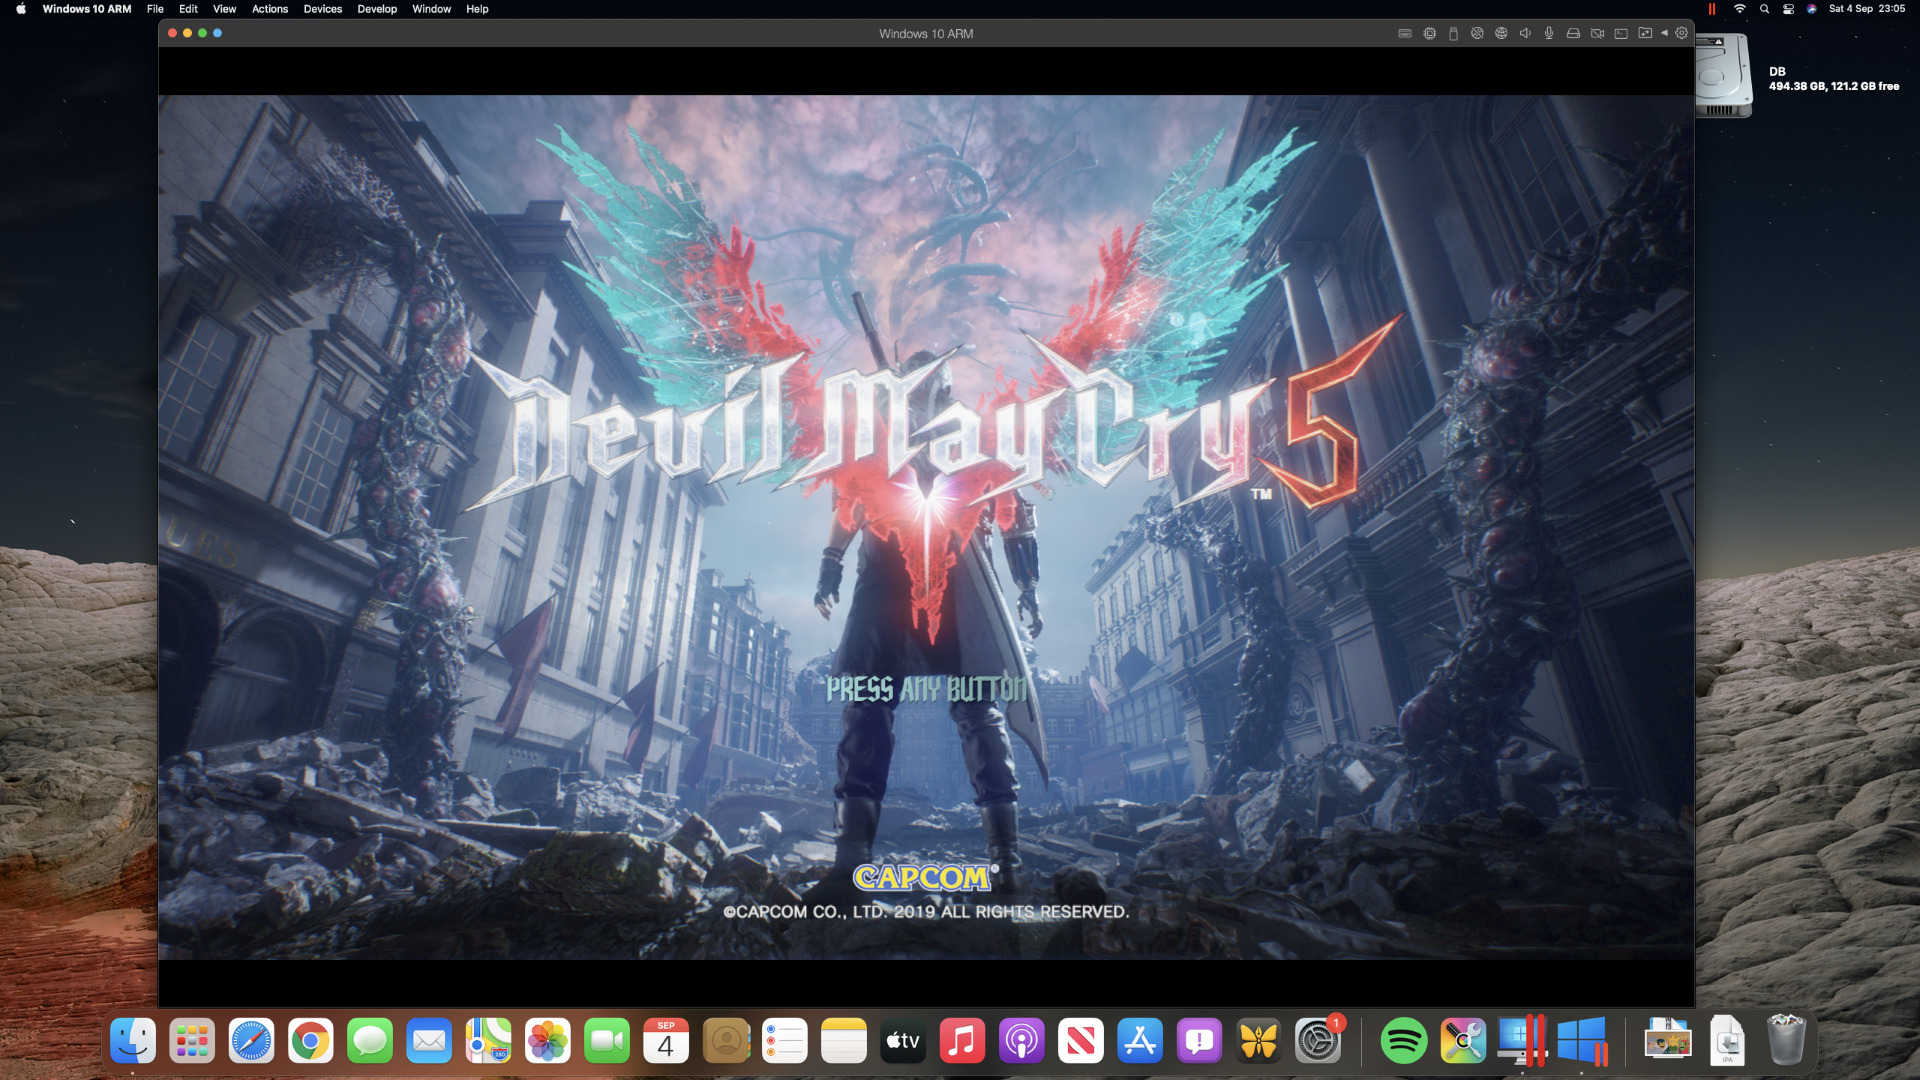 Devil May Cry 5 running in Parallels Desktop on a Mac mini M1